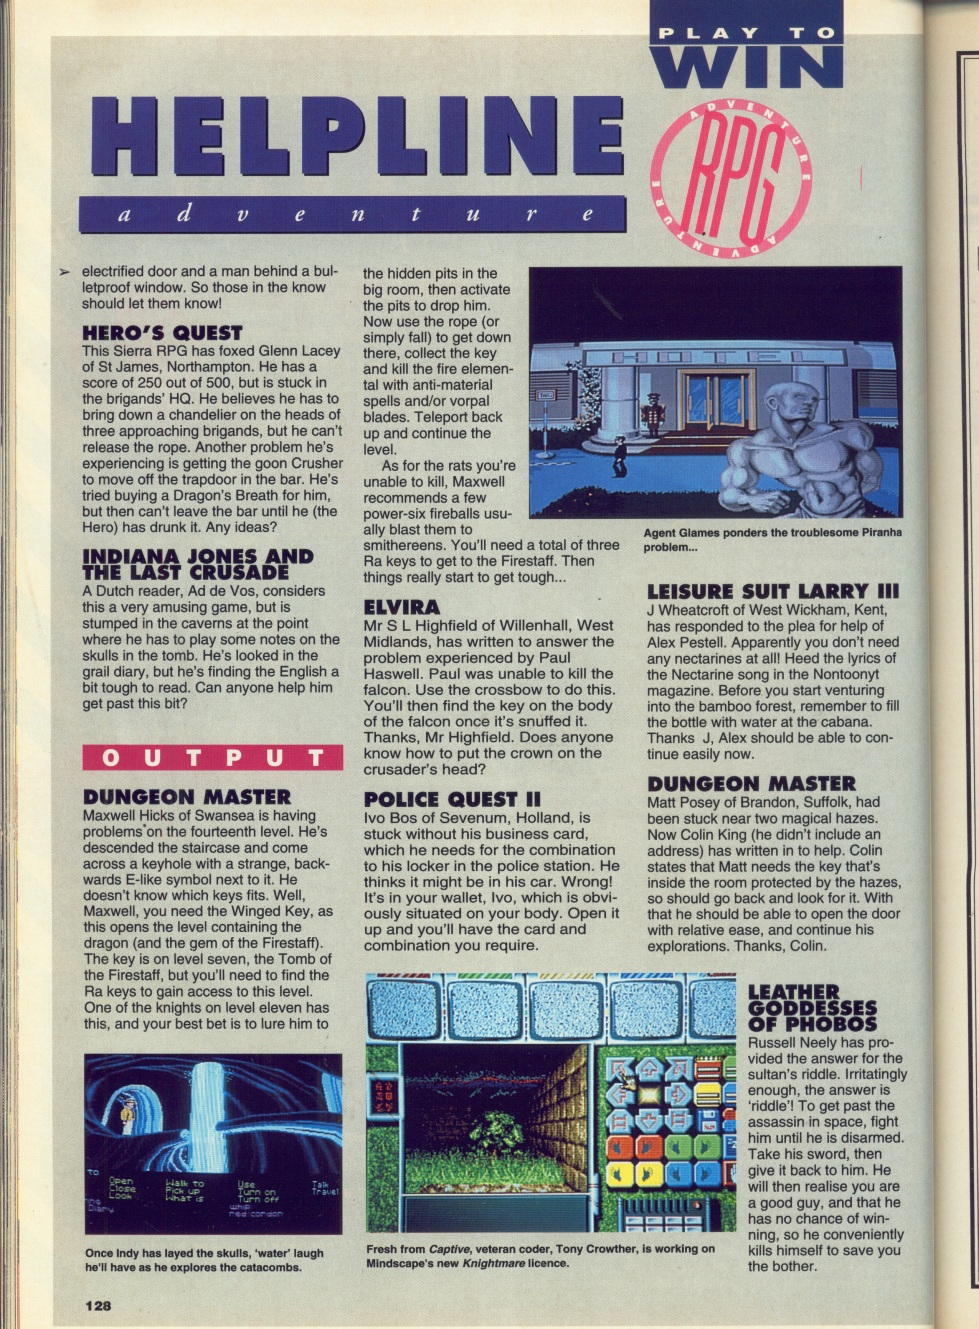 Dungeon Master Hints published in British magazine 'CU Amiga', September 1991, Page 128